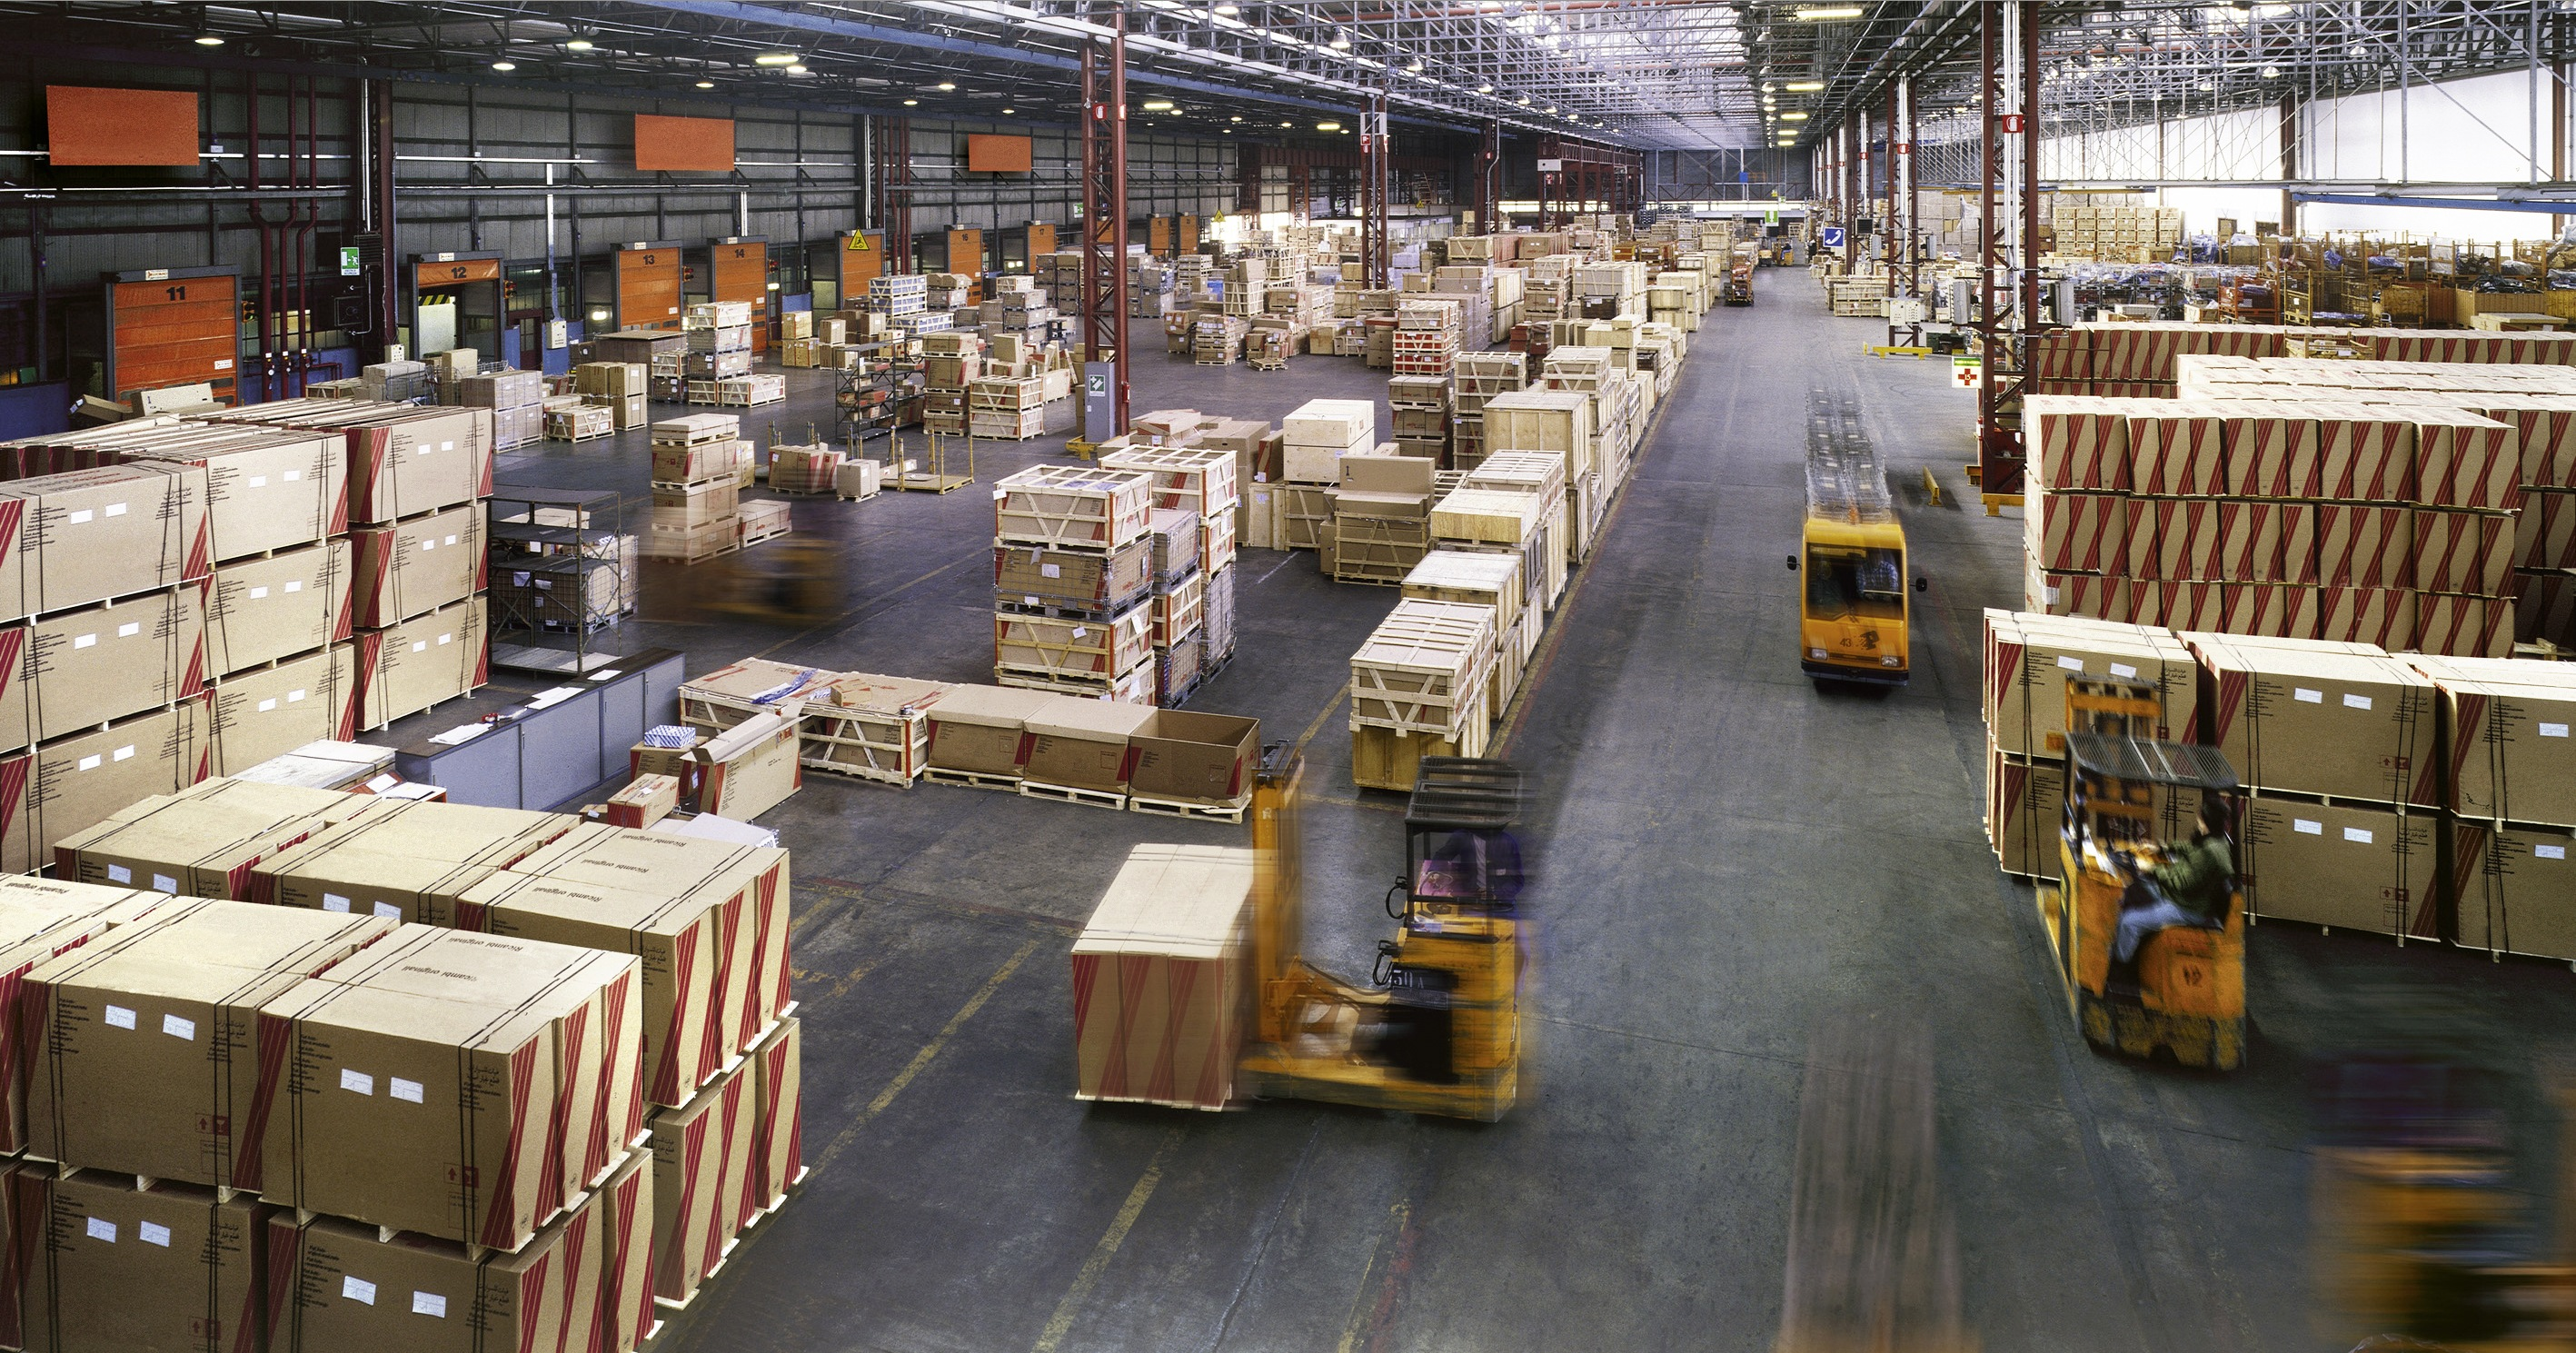 Indoor manufacturing and storage detail